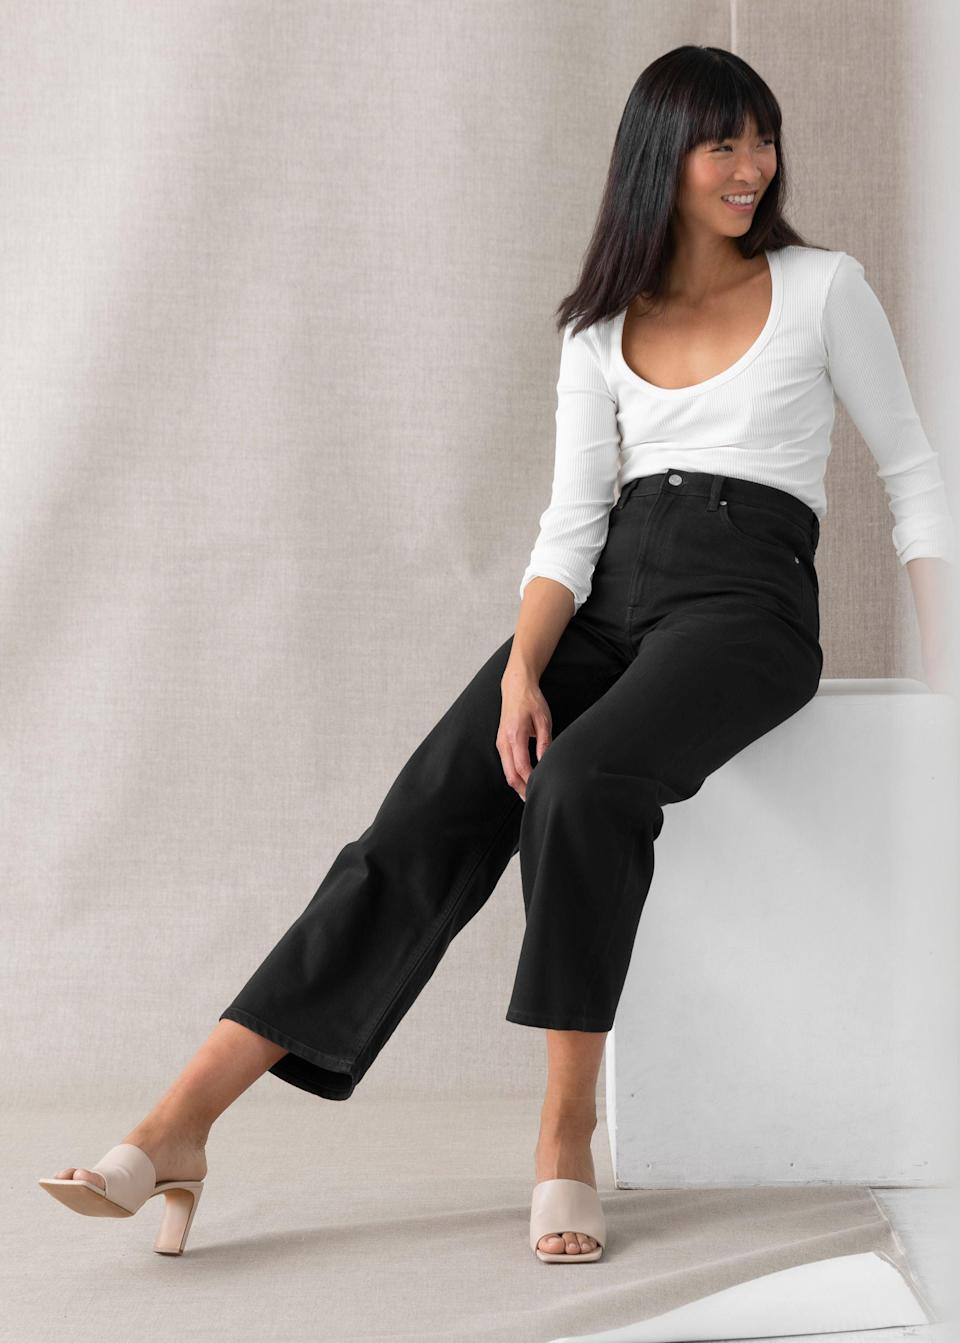 """<br><br><strong>& Other Stories</strong> Treasure Cut Cropped Jeans, $, available at <a href=""""https://go.skimresources.com/?id=30283X879131&url=https%3A%2F%2Fwww.stories.com%2Fen_usd%2Fclothing%2Fjeans%2Fstraight%2Fproduct.treasure-cut-cropped-jeans-black.0905737003.html"""" rel=""""nofollow noopener"""" target=""""_blank"""" data-ylk=""""slk:& Other Stories"""" class=""""link rapid-noclick-resp"""">& Other Stories</a>"""